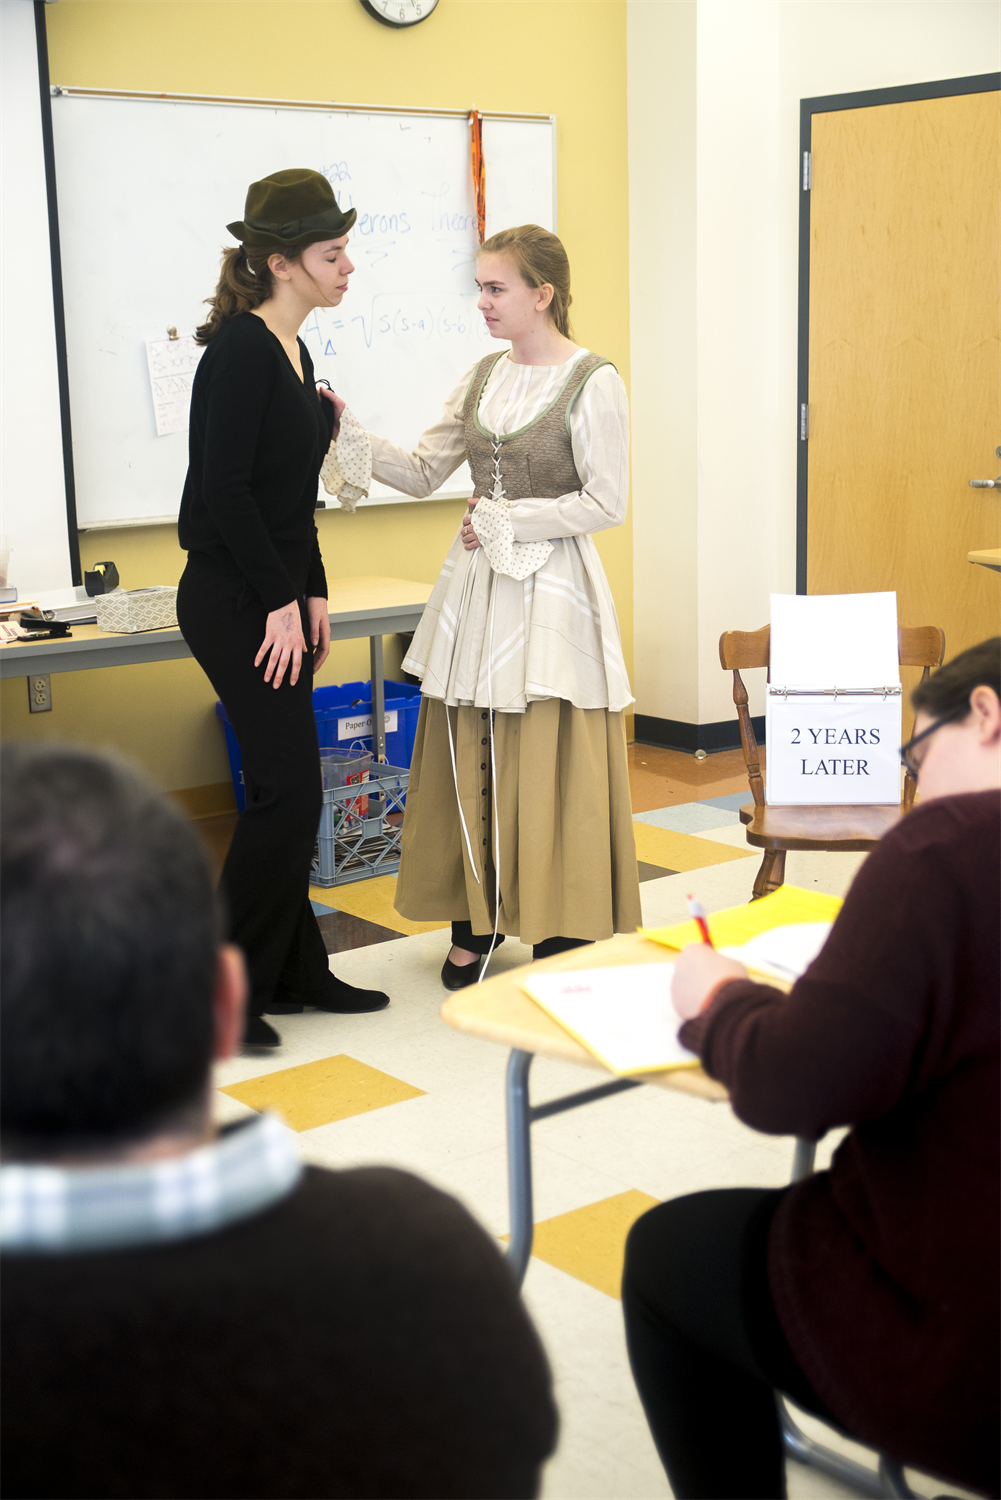 Two students perform a skit at the front of a school classroom while two judges watch and take notes.  One student is wearing all black and a cap with a rounded top, while the other wears an old-fashioned lace-up dress and an apron.